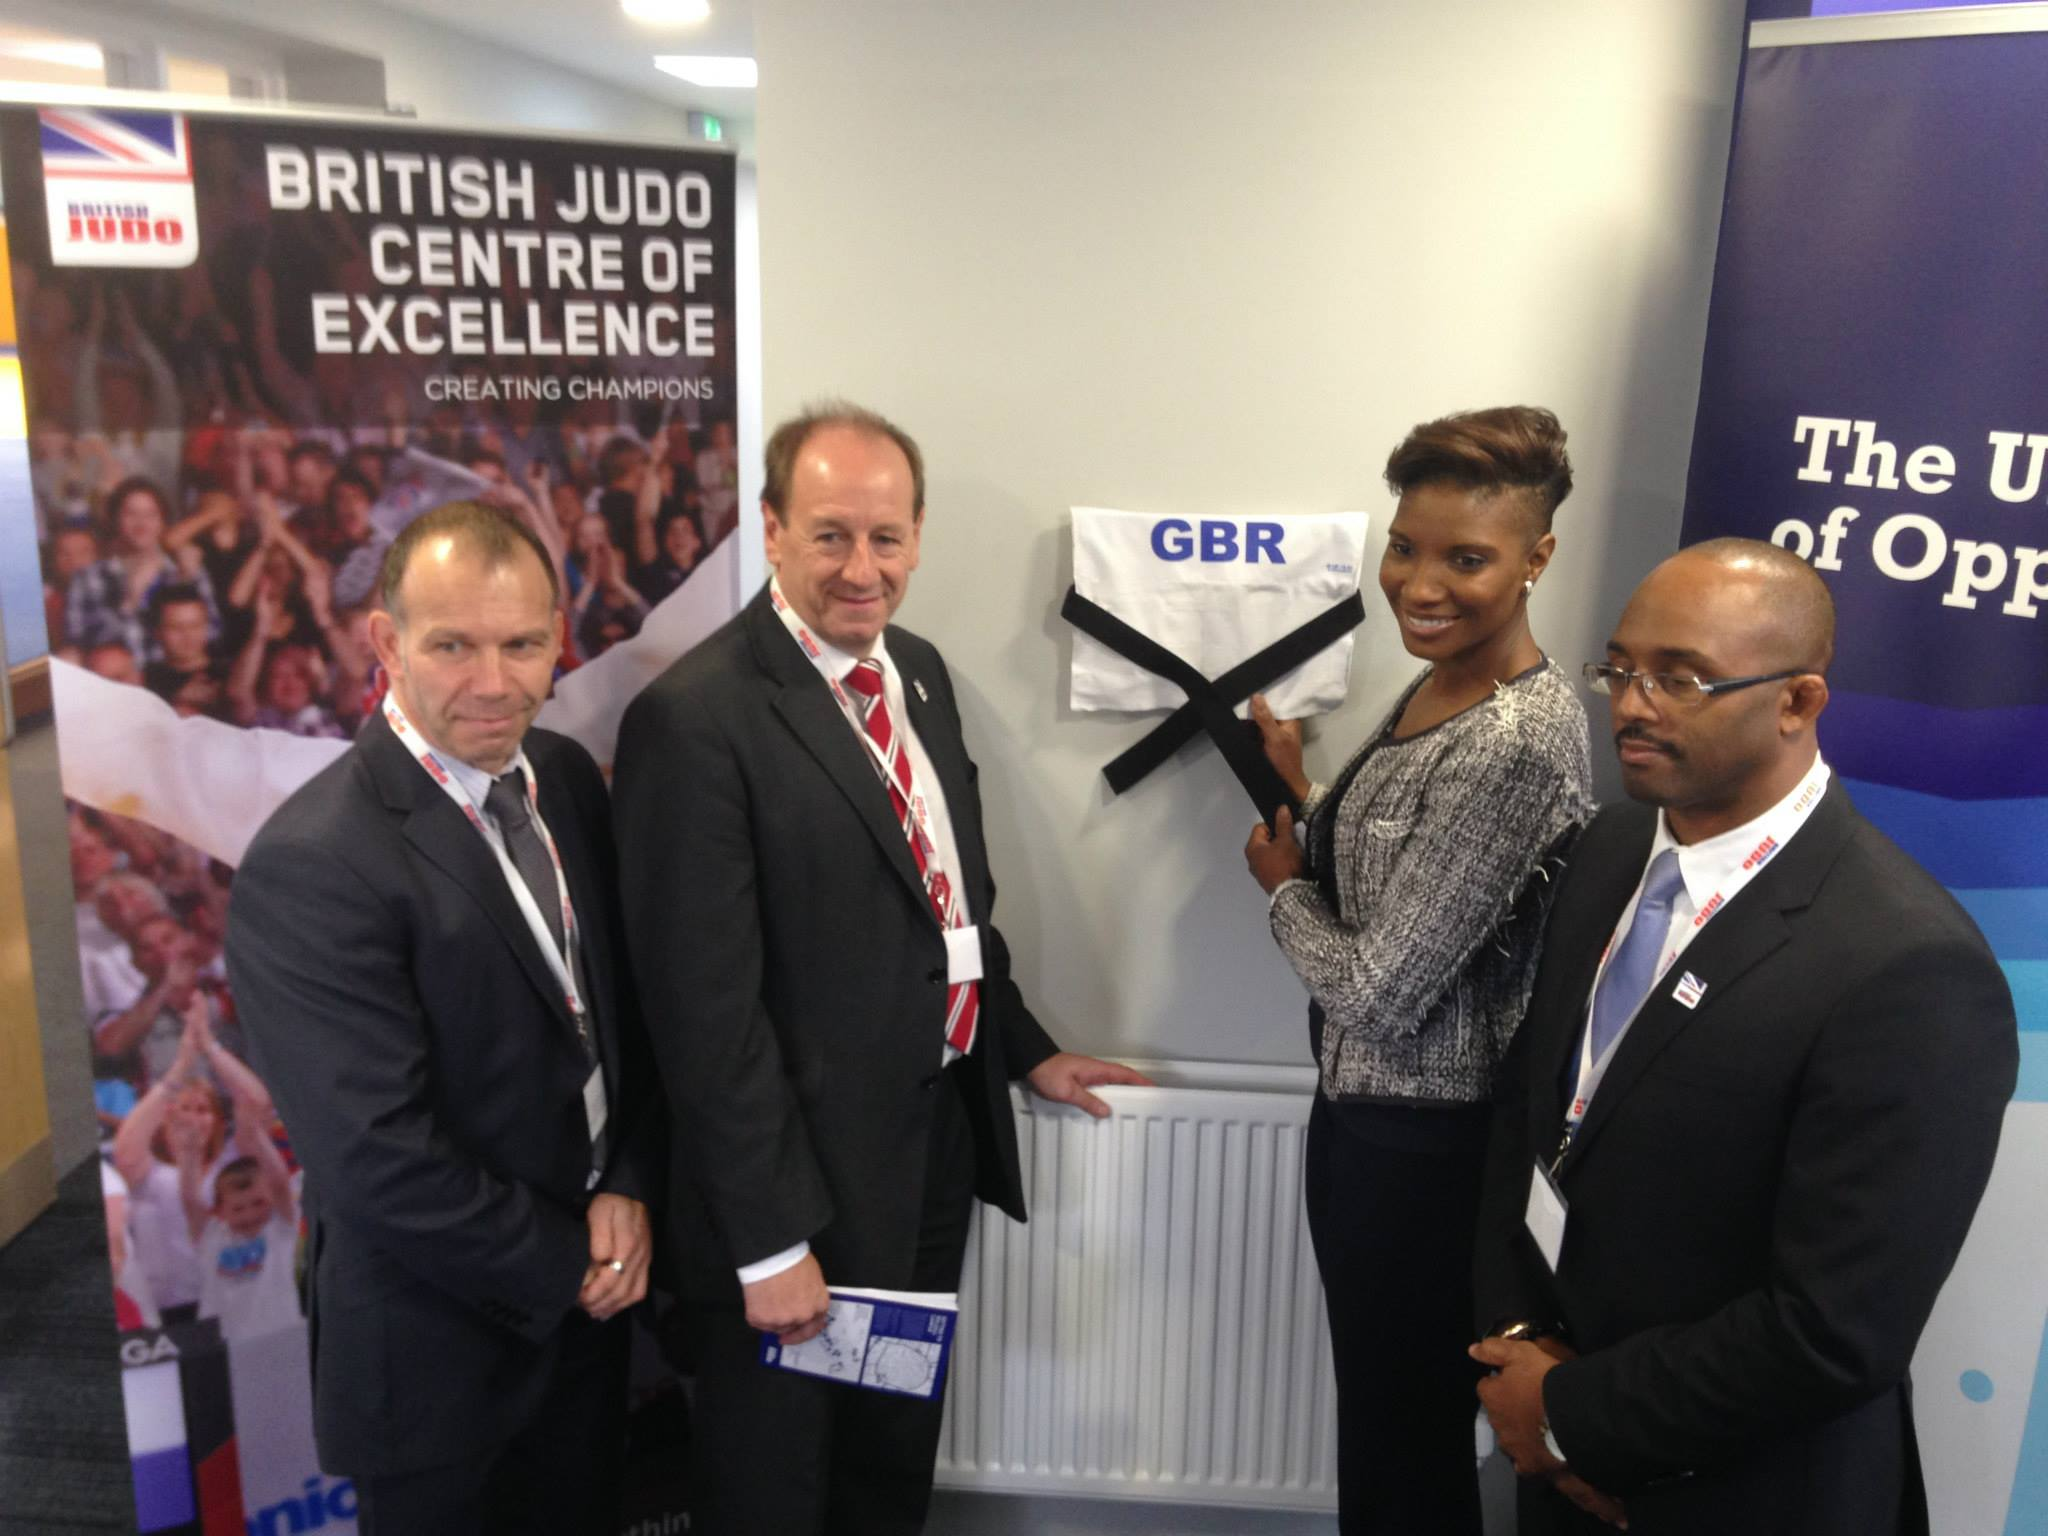 Denise Lewis unveiling the British Judo Centre of Excellence in her home town University of Wolverhampton